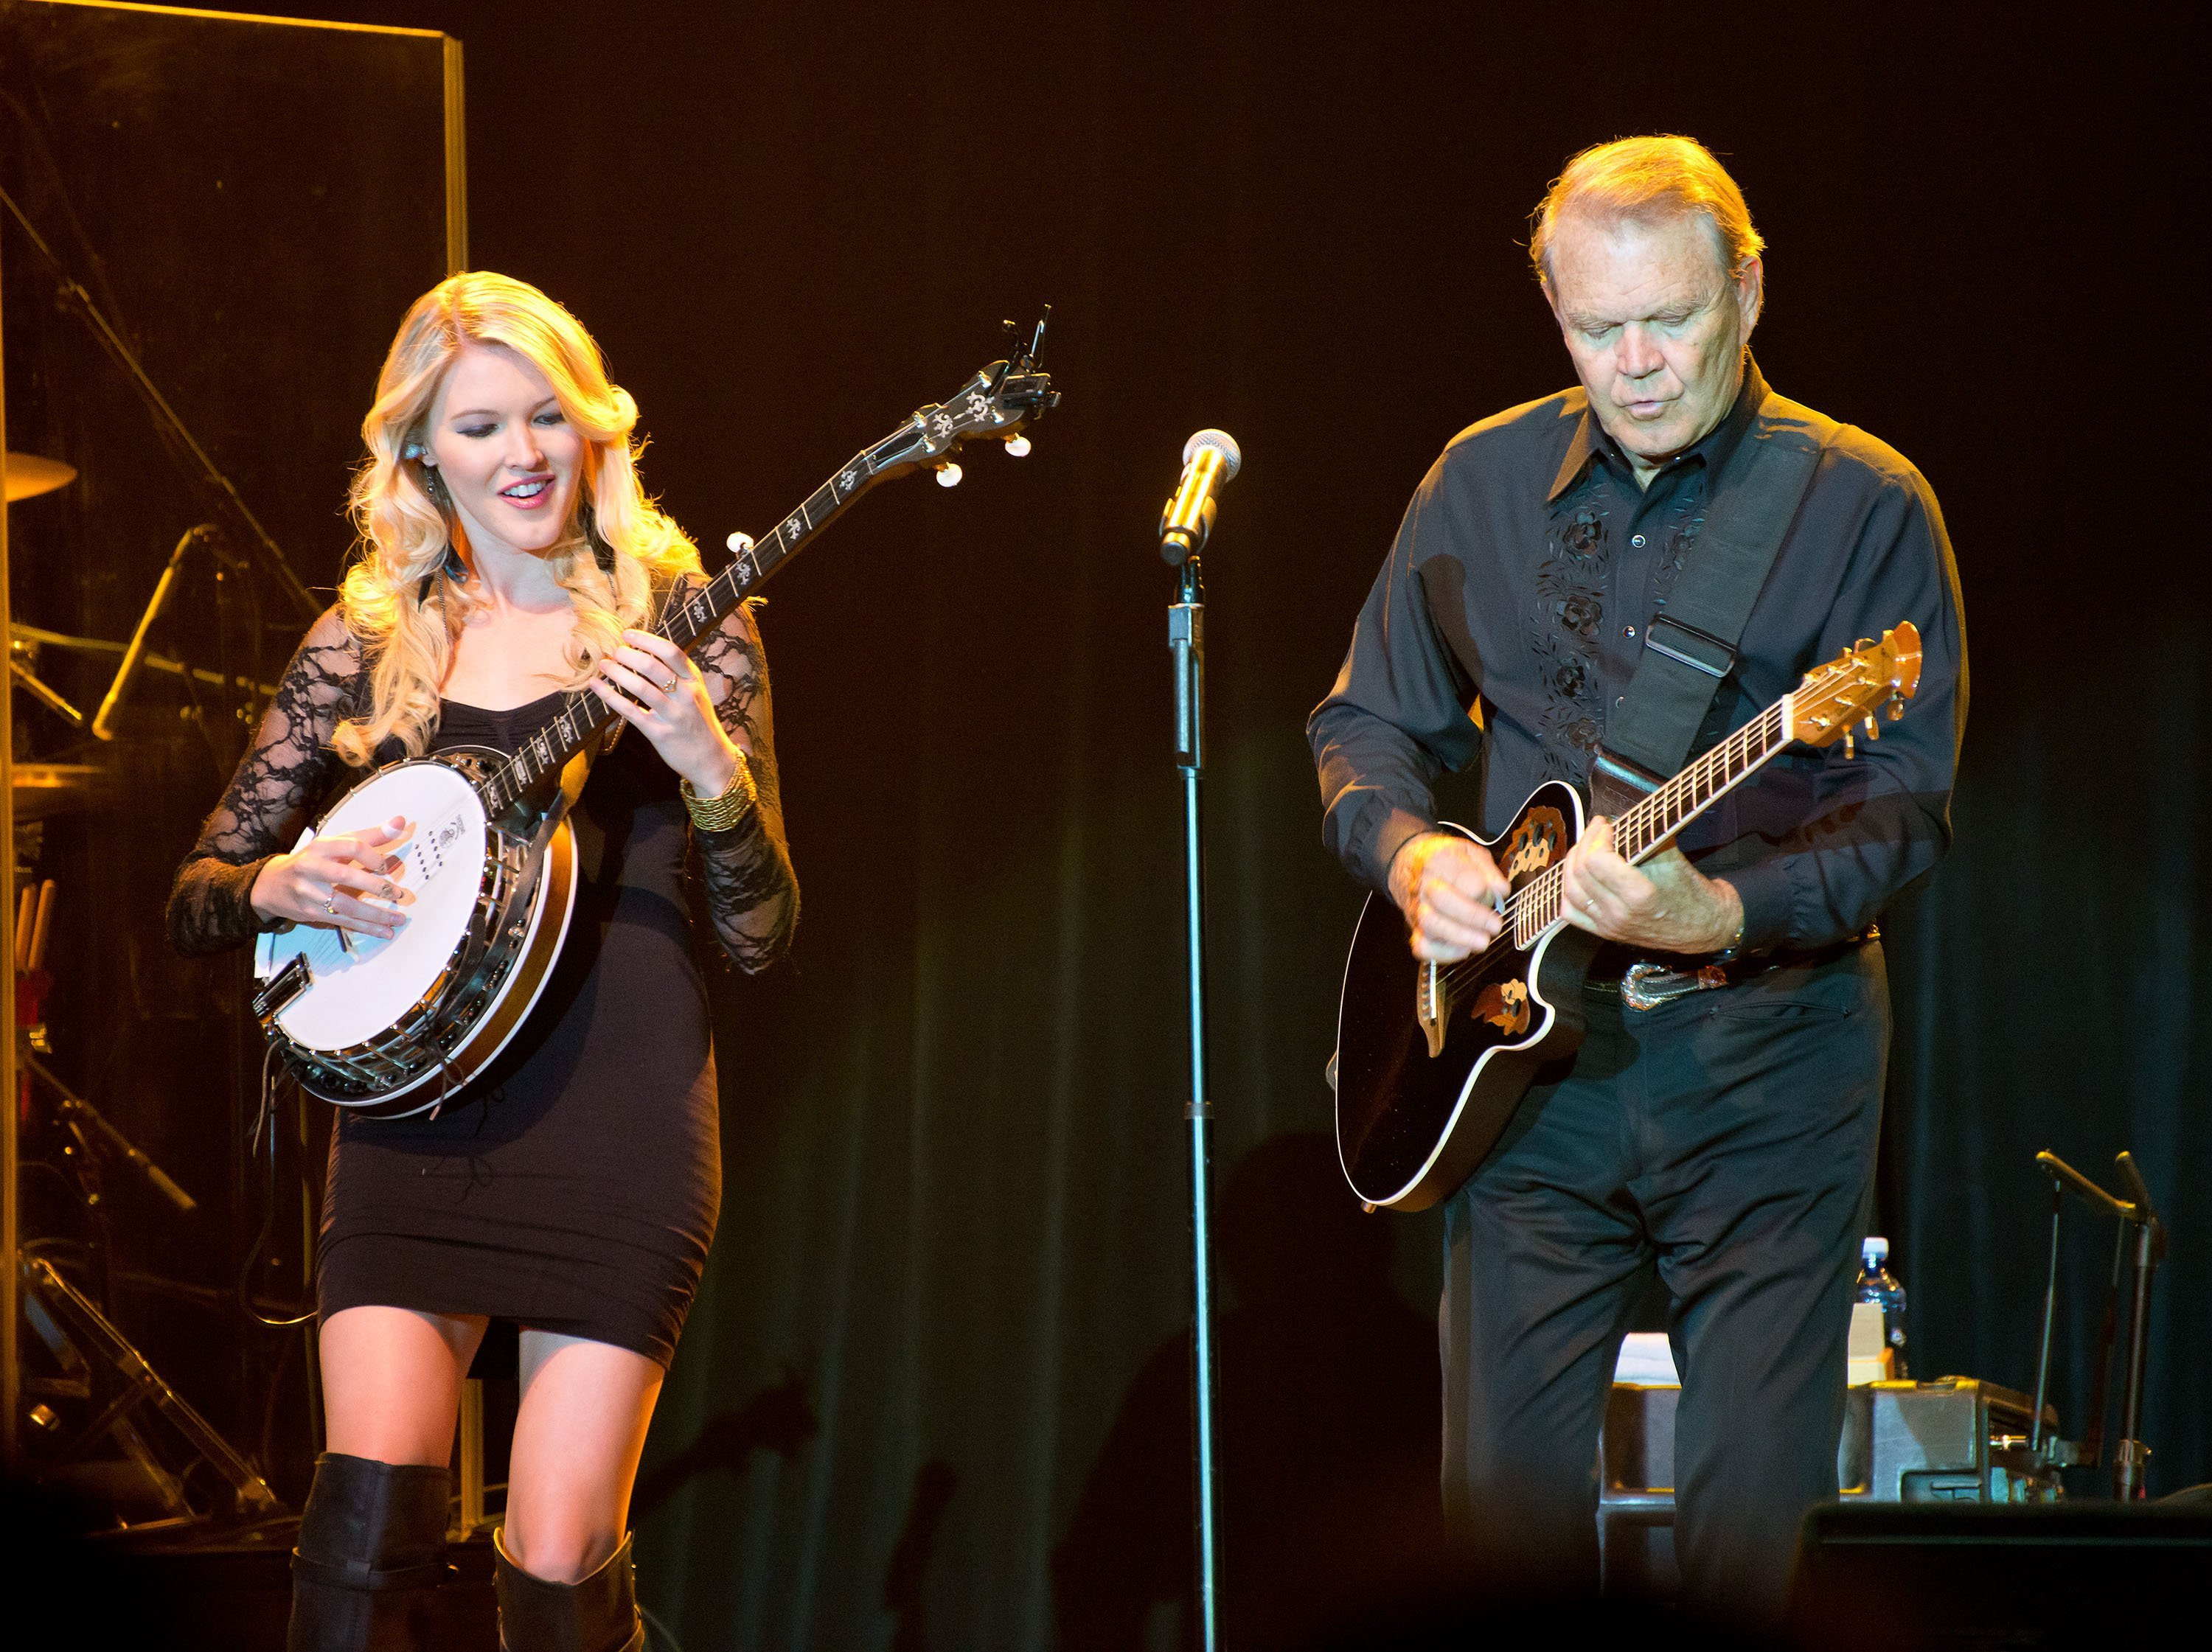 Glen Campbell on stage with he & Kim's daughter Ashley during his Goodbye Tour in Albuquerque, New Mexico on July 29, 2012. |Photo: Getty Images